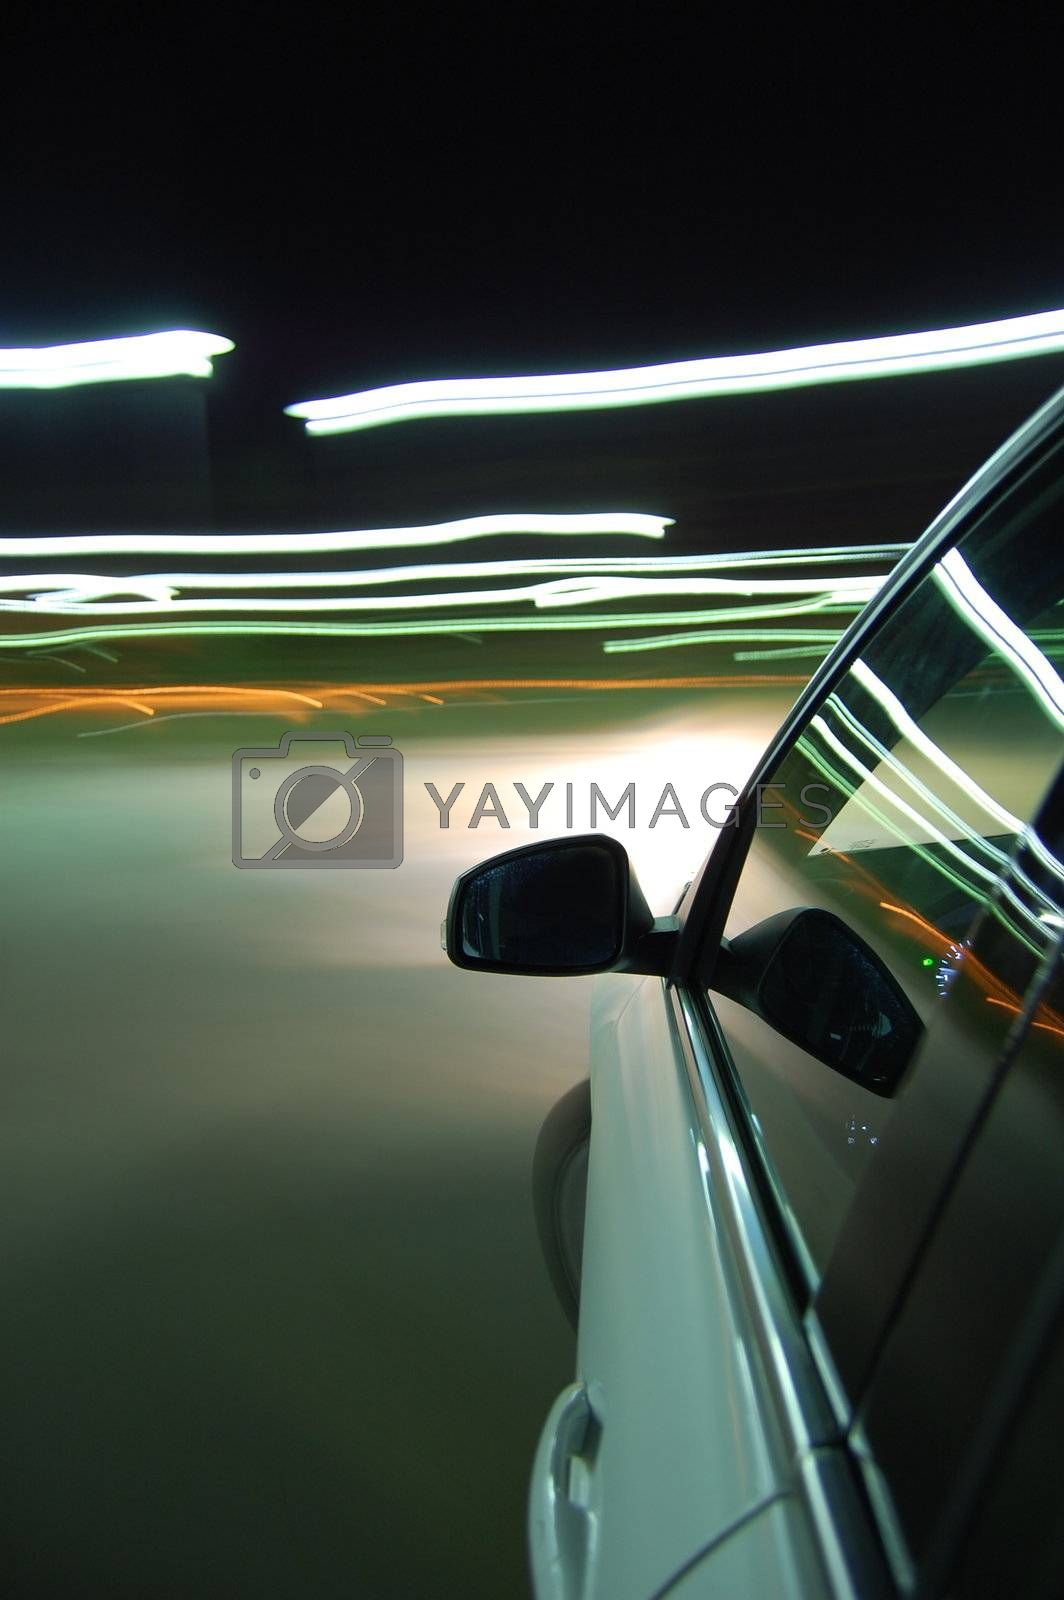 night drive with car in motion through the city shows the speed